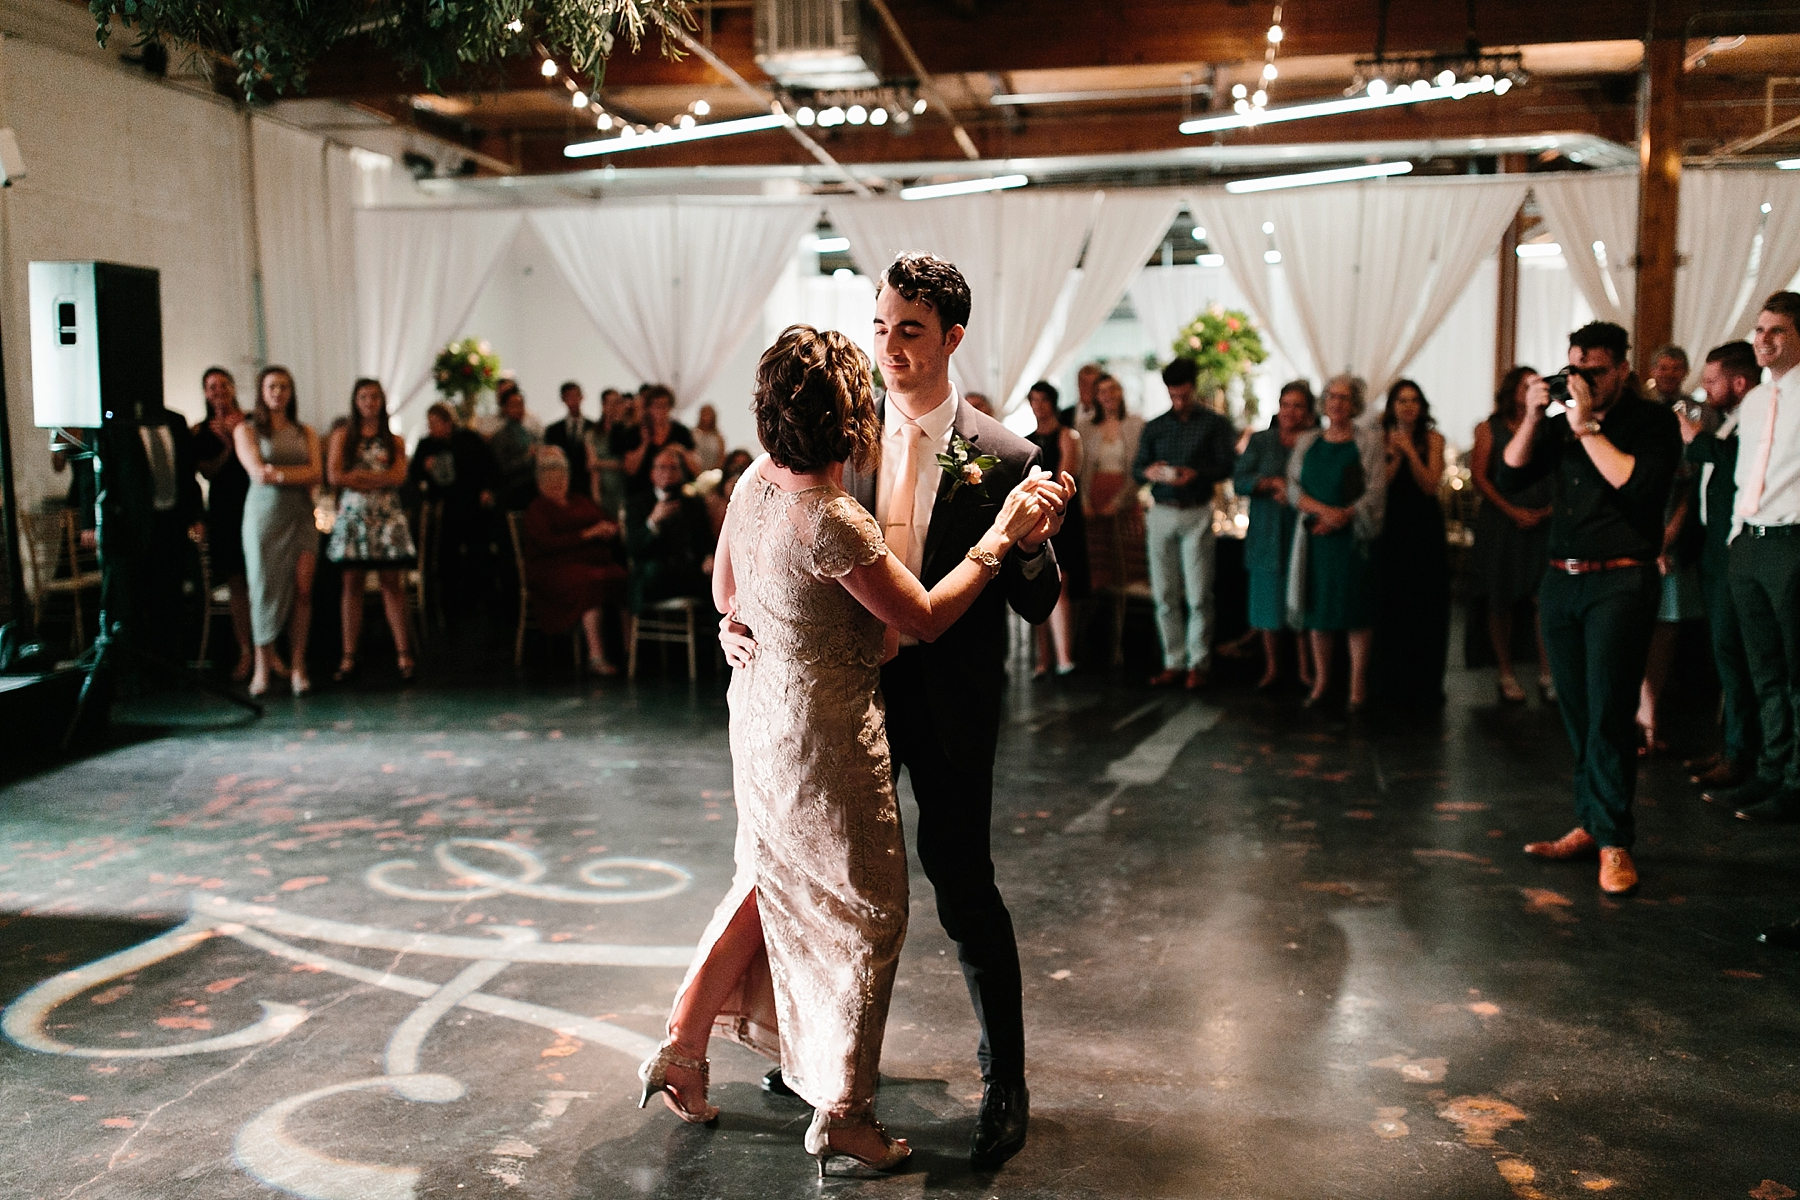 Emily + Caleb _ an elegant, intentional, industrial style wedding with navy + gold accents at 6500 in Dallas, TX by North Texas Wedding Photographer Rachel Meagan Photography _ 152